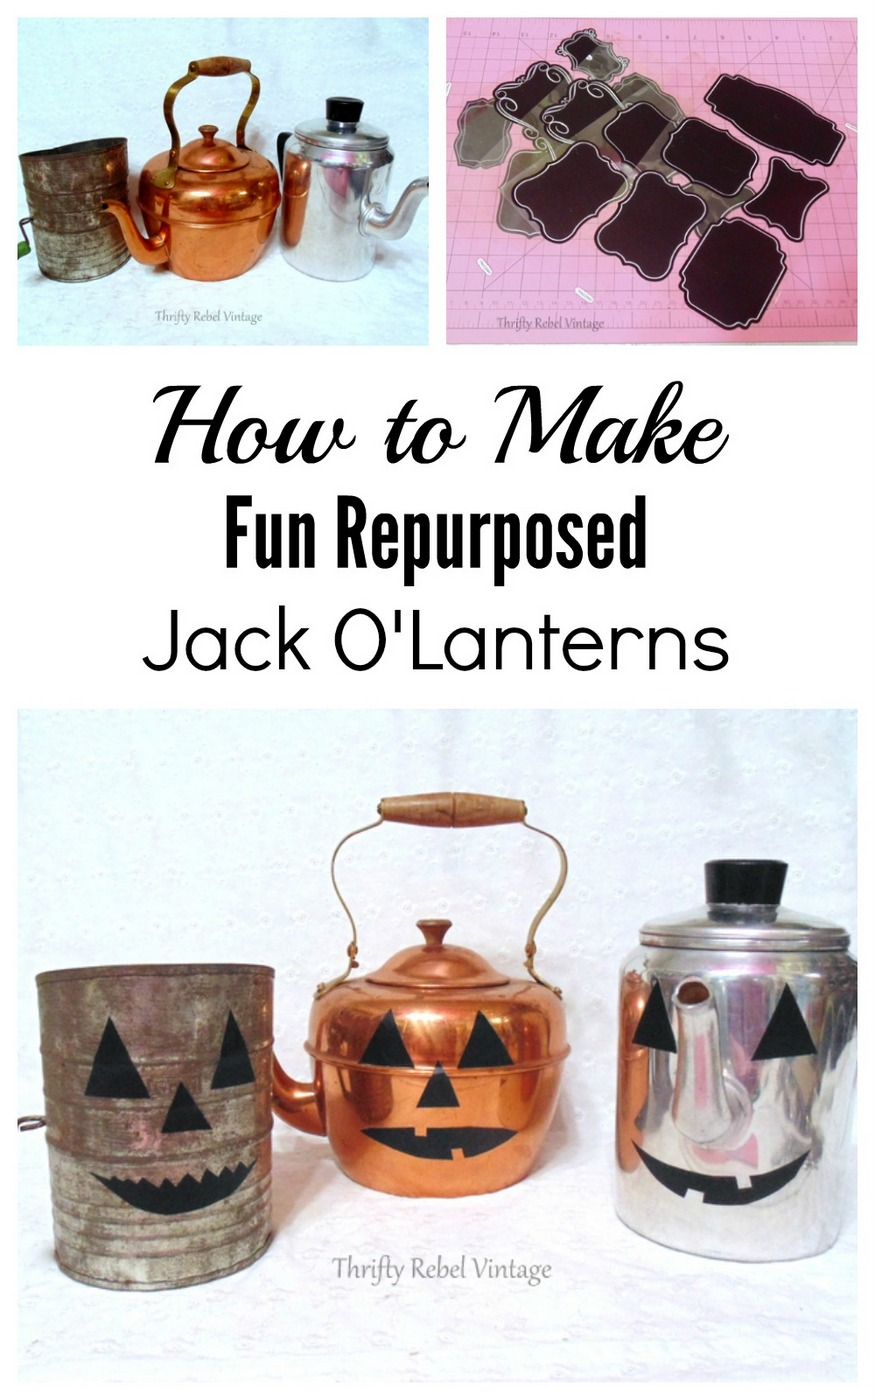 Repurposed Coffee Pot Teapot and Sifter Jack O'Lanterns